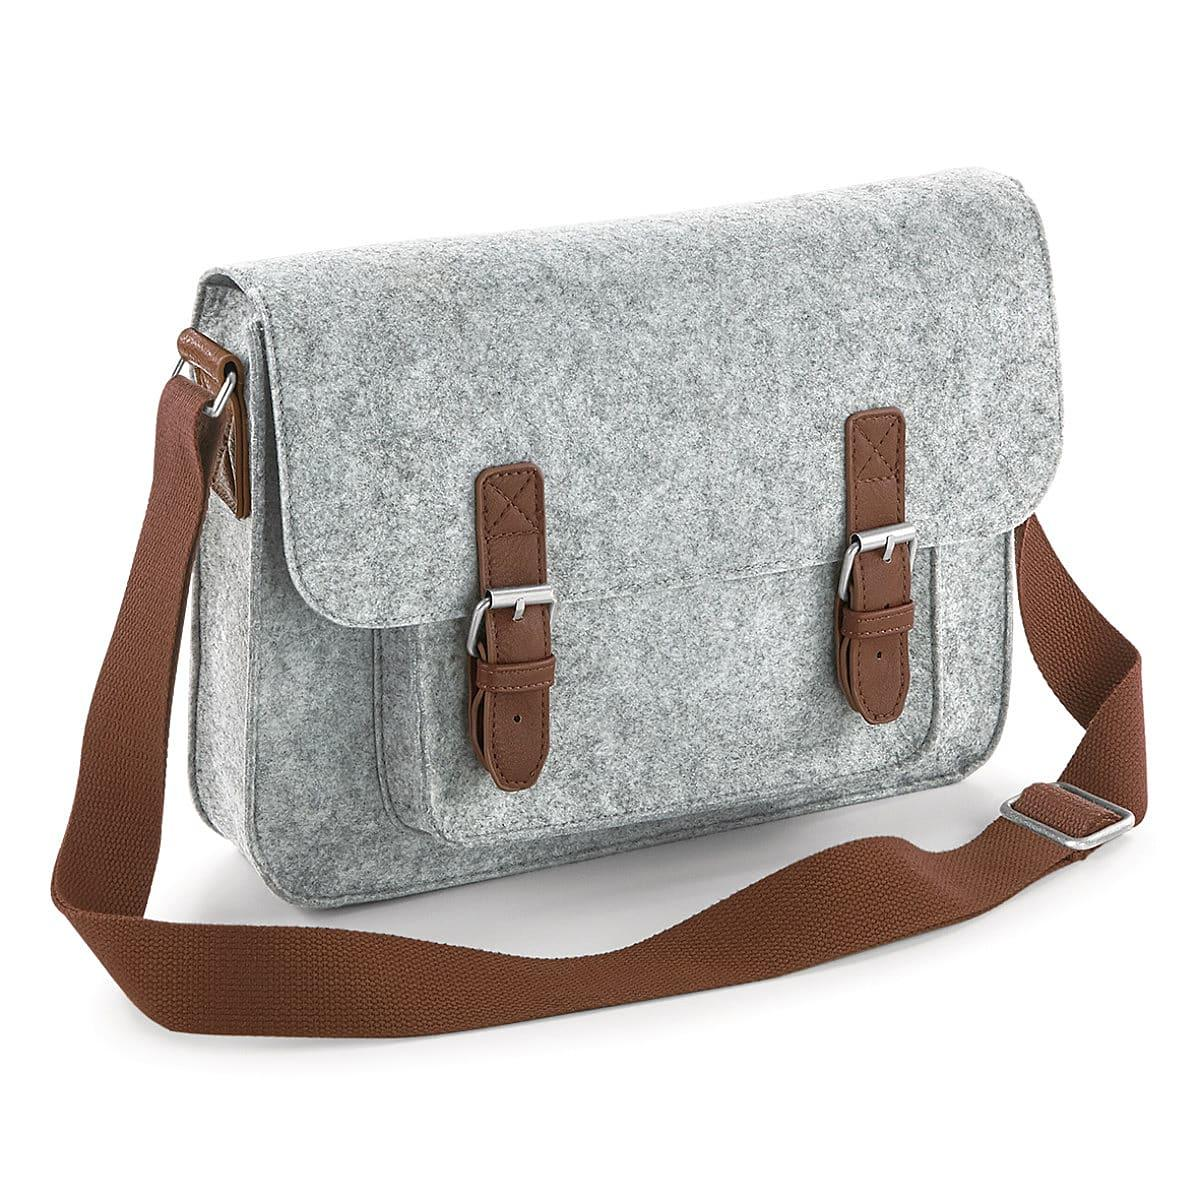 Bagbase Premium Felt Satchel in Grey Melange / Tan (Product Code: BG736)